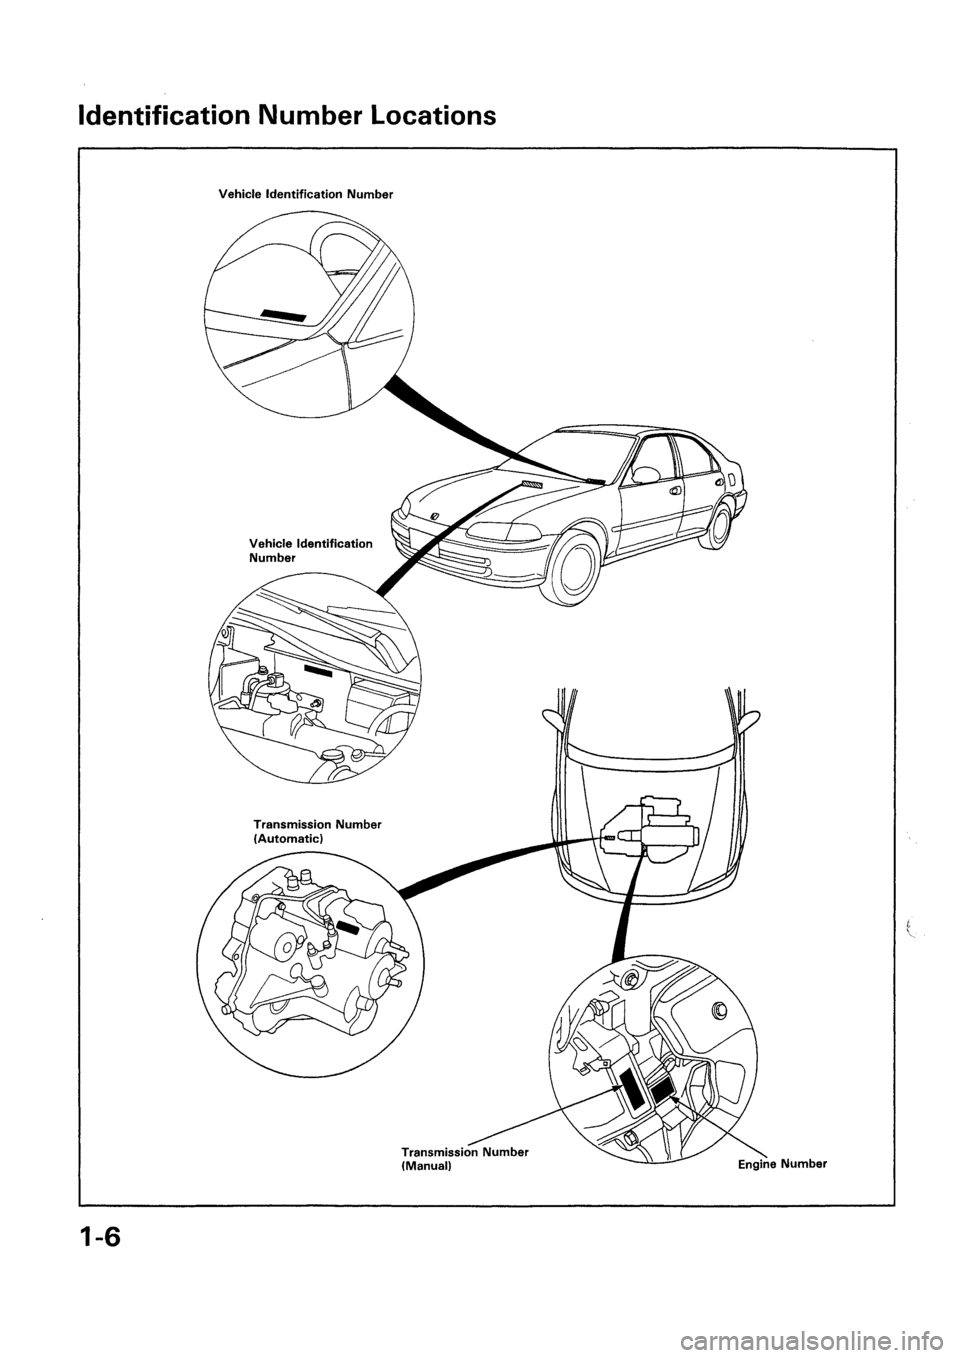 HONDA CIVIC 1993 5.G Workshop Manual